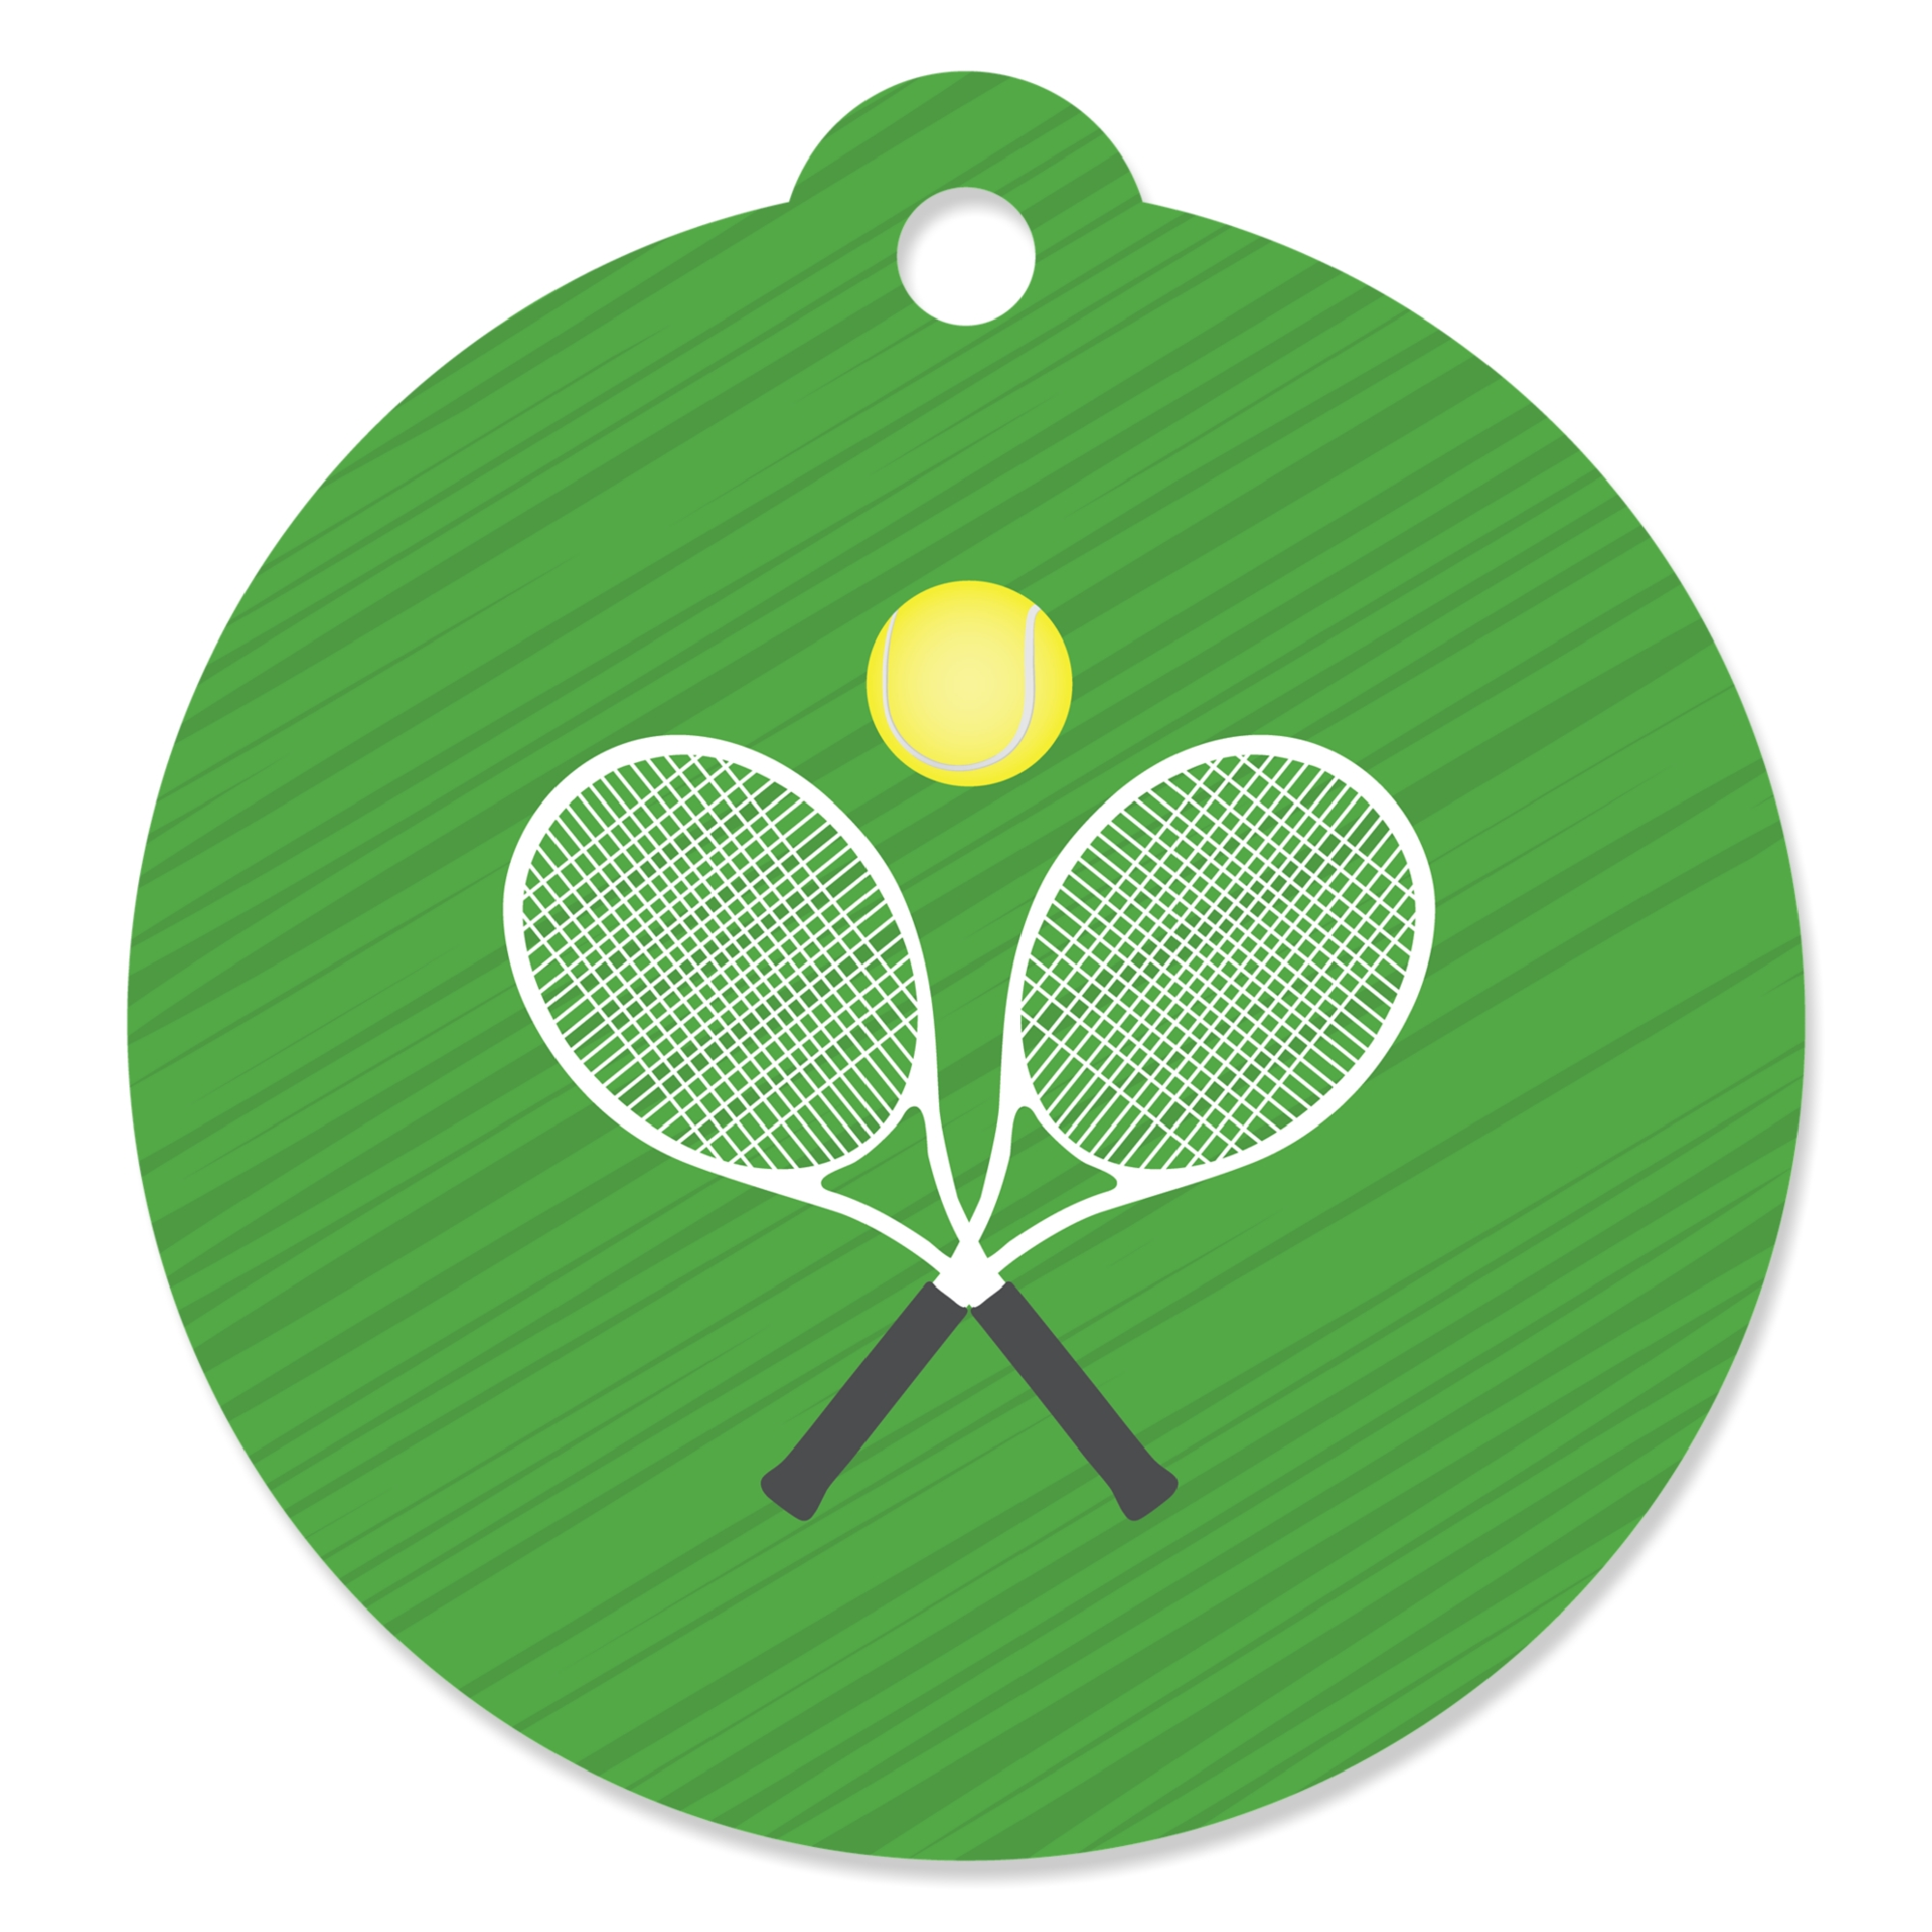 You Got Served - Tennis - Baby Shower or Tennis Ball Birthday Party Favor Gift Tags (Set of 20)